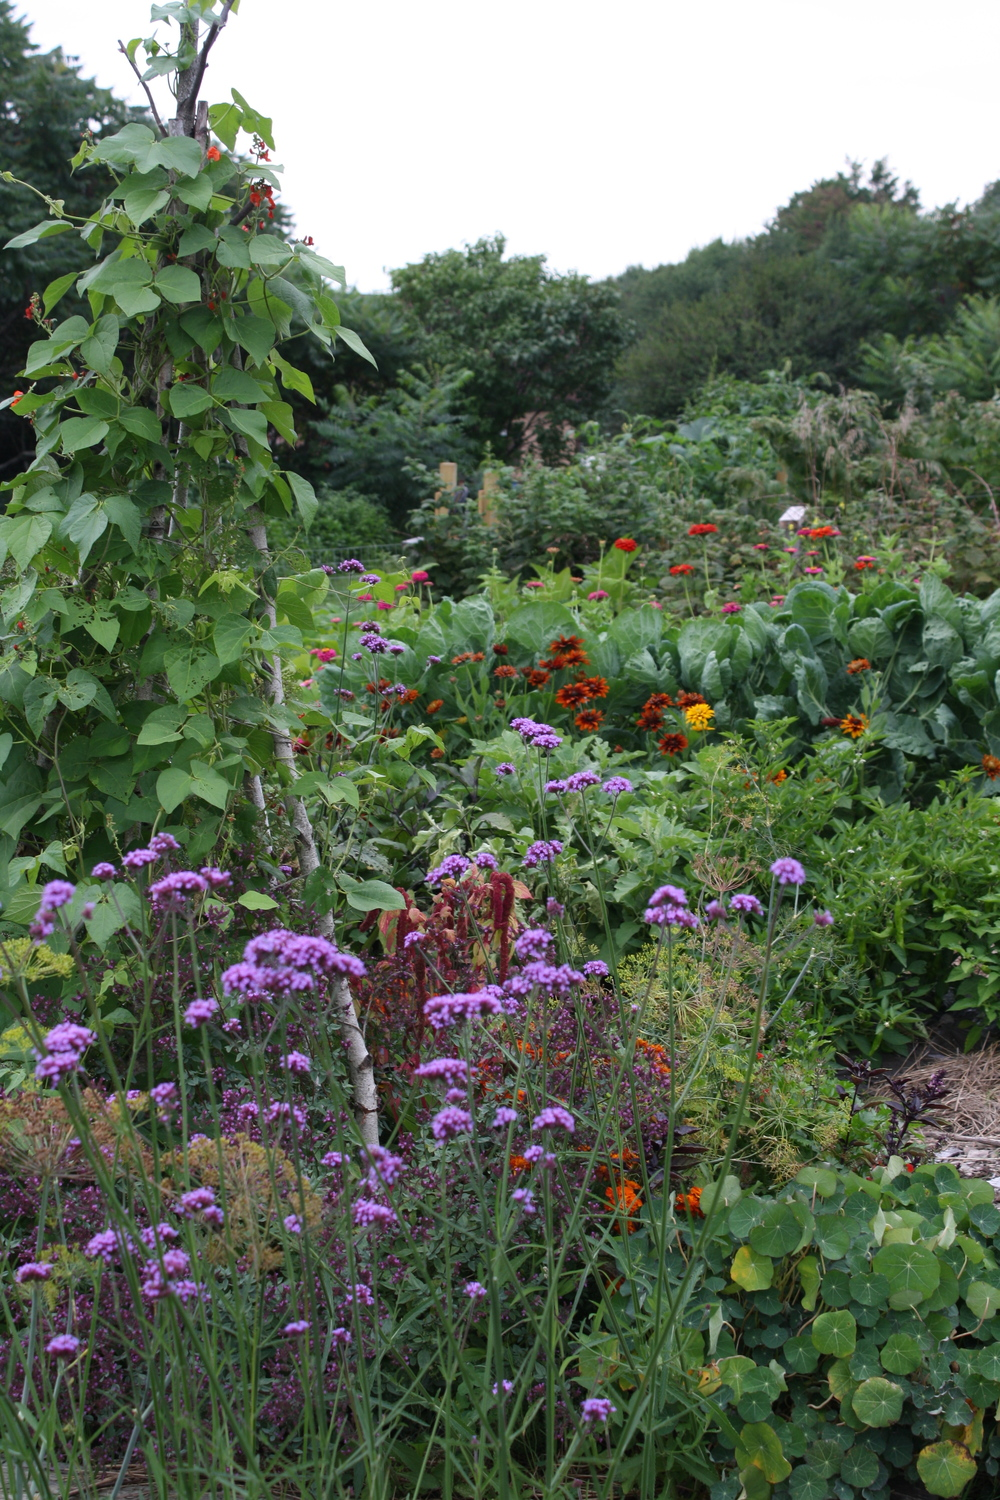 Scarlet Runner Beans (dating back to Jefferson's revolutionary garden at Monticello!) on teepee, Verbena bonariensis in foreground, zinnias, rudbeckia, brussels sprouts in back